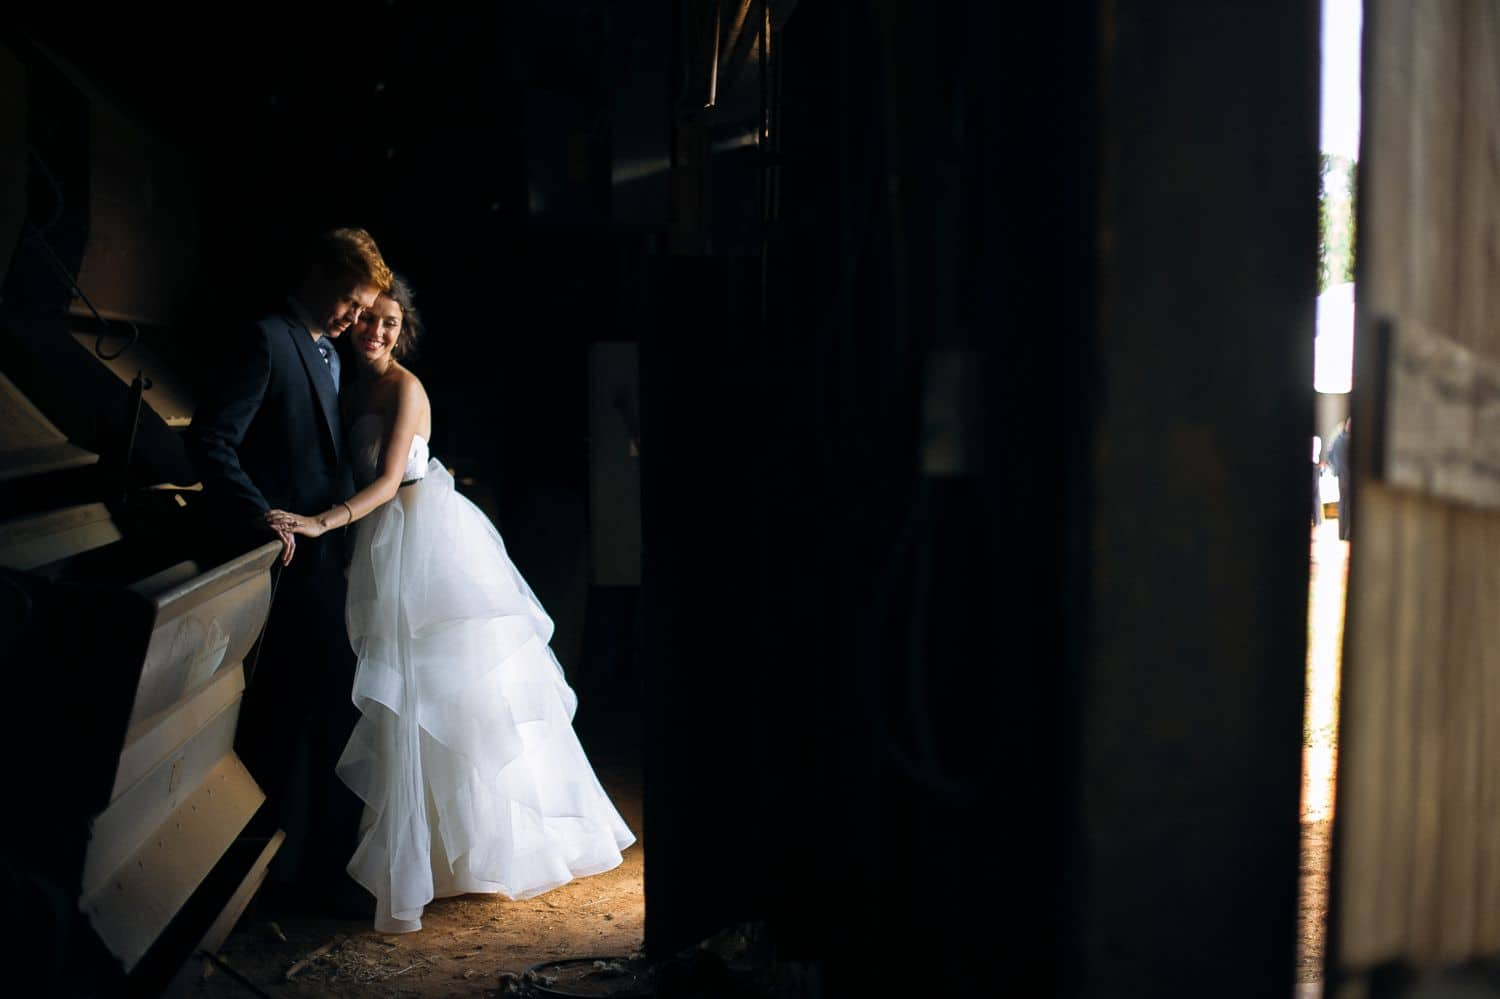 A photographer sneaks a quick photo of a bride and groom having an intimate moment on their wedding day